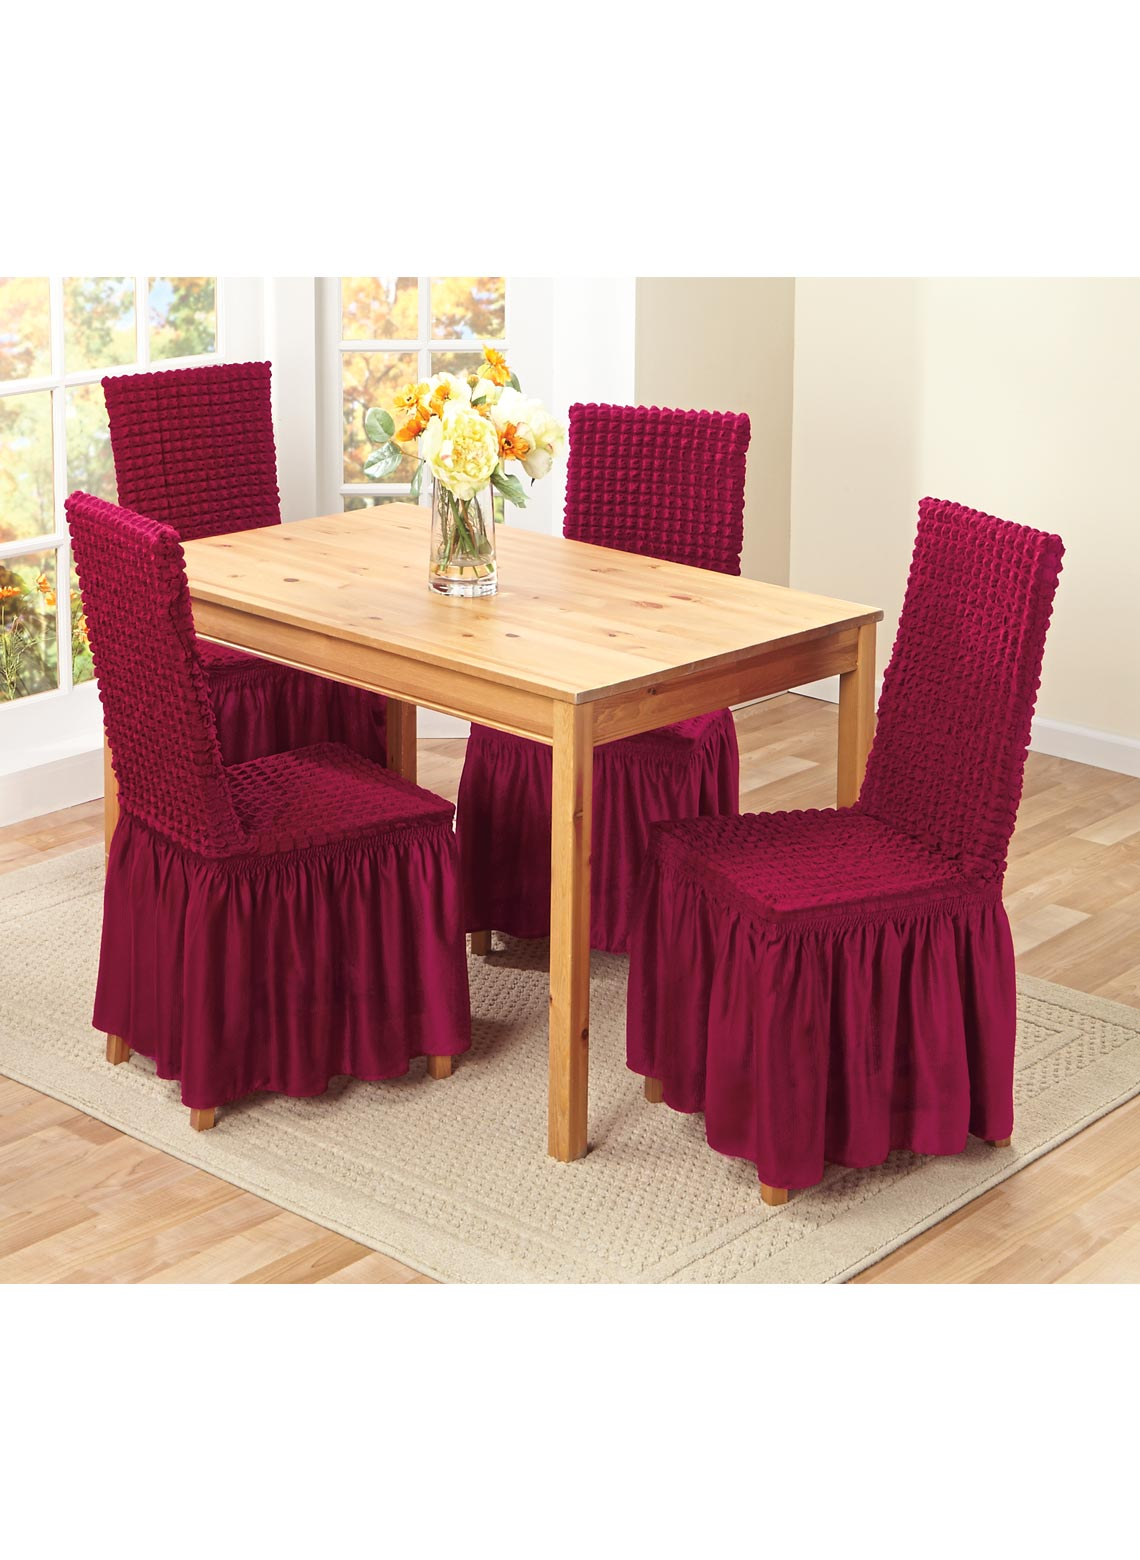 Textured Dining Room Chair Covers   CarolWrightGifts.com